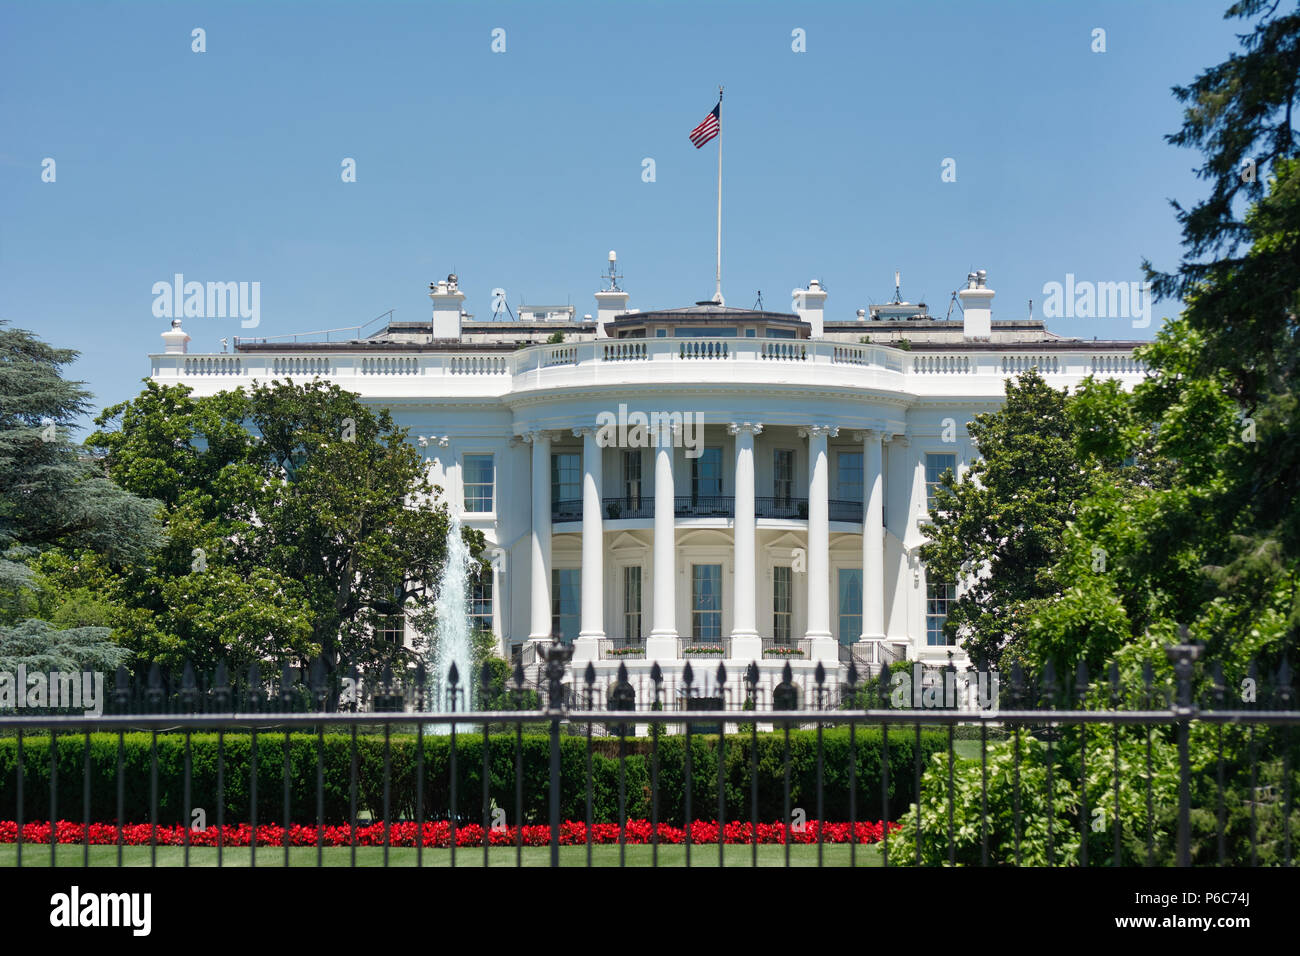 The White House Located Near The National Mall Washington Dc